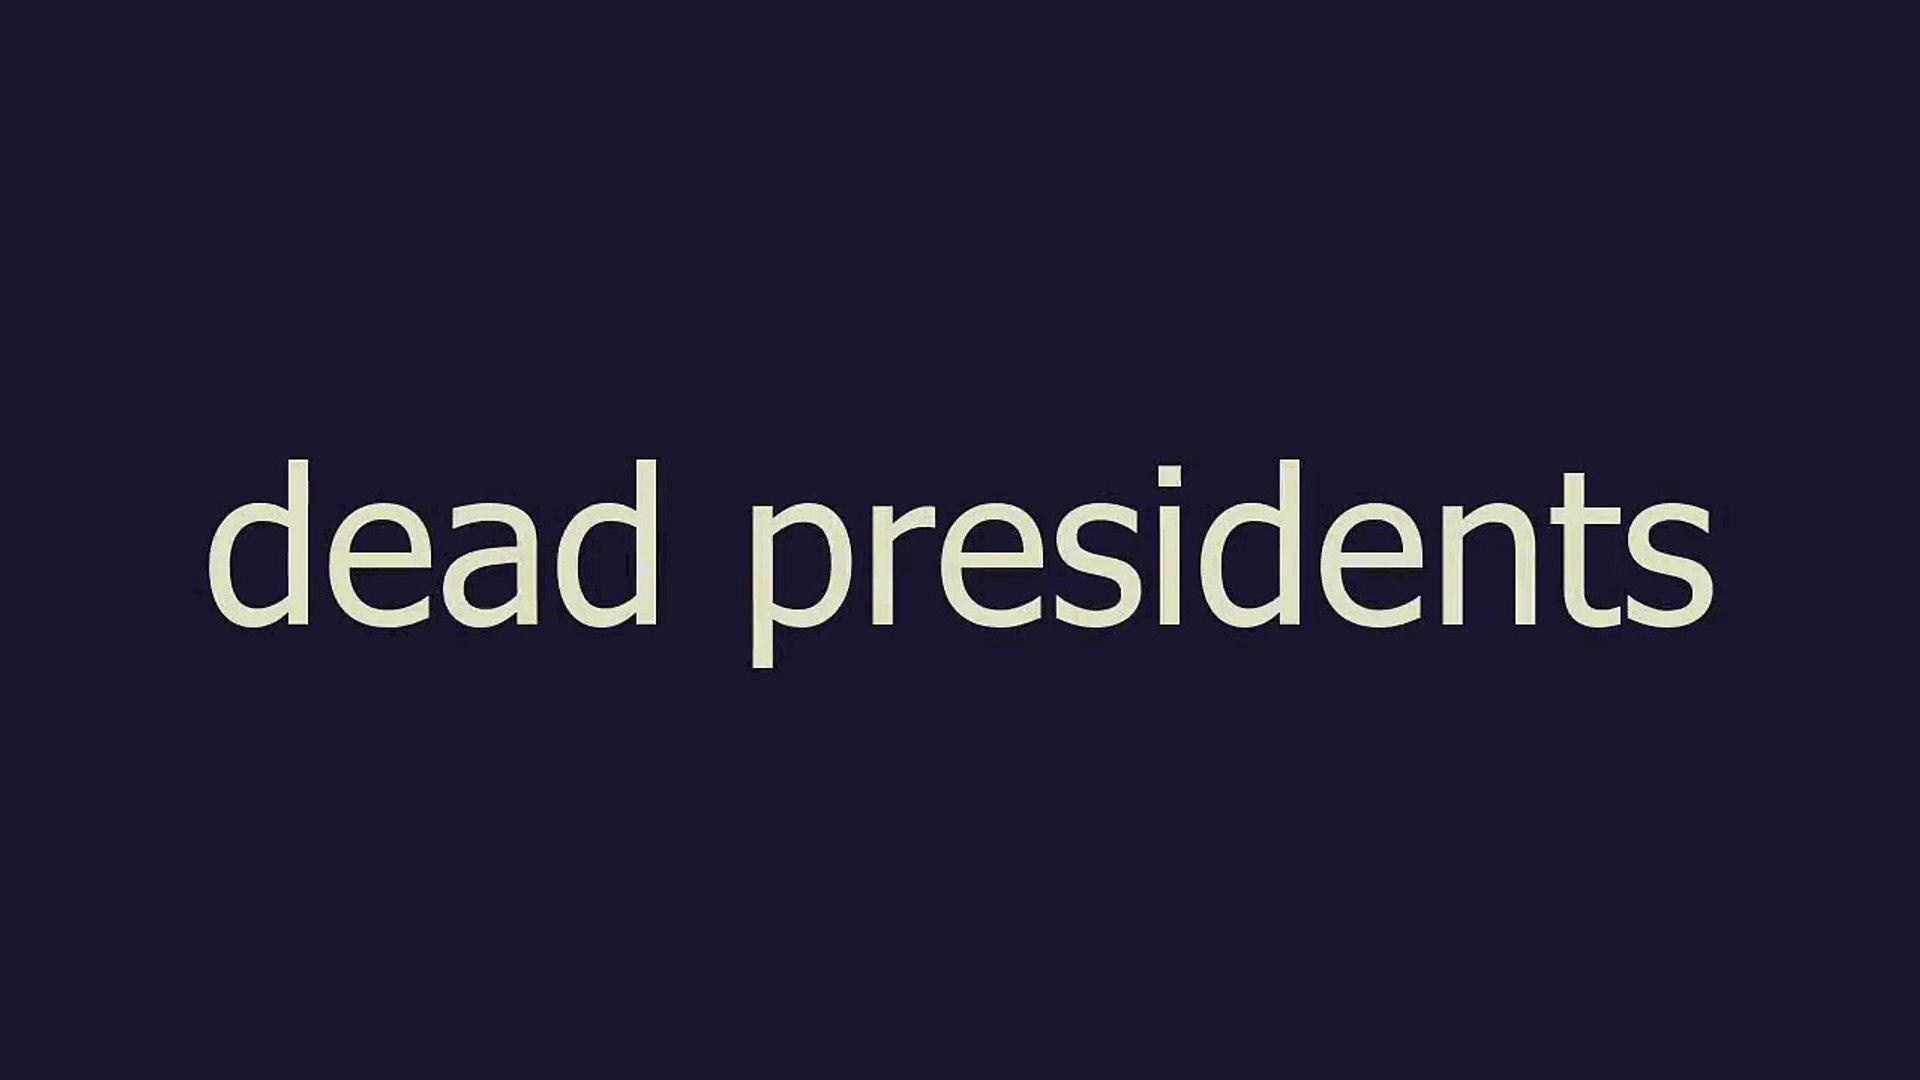 dead presidents meaning and pronunciation